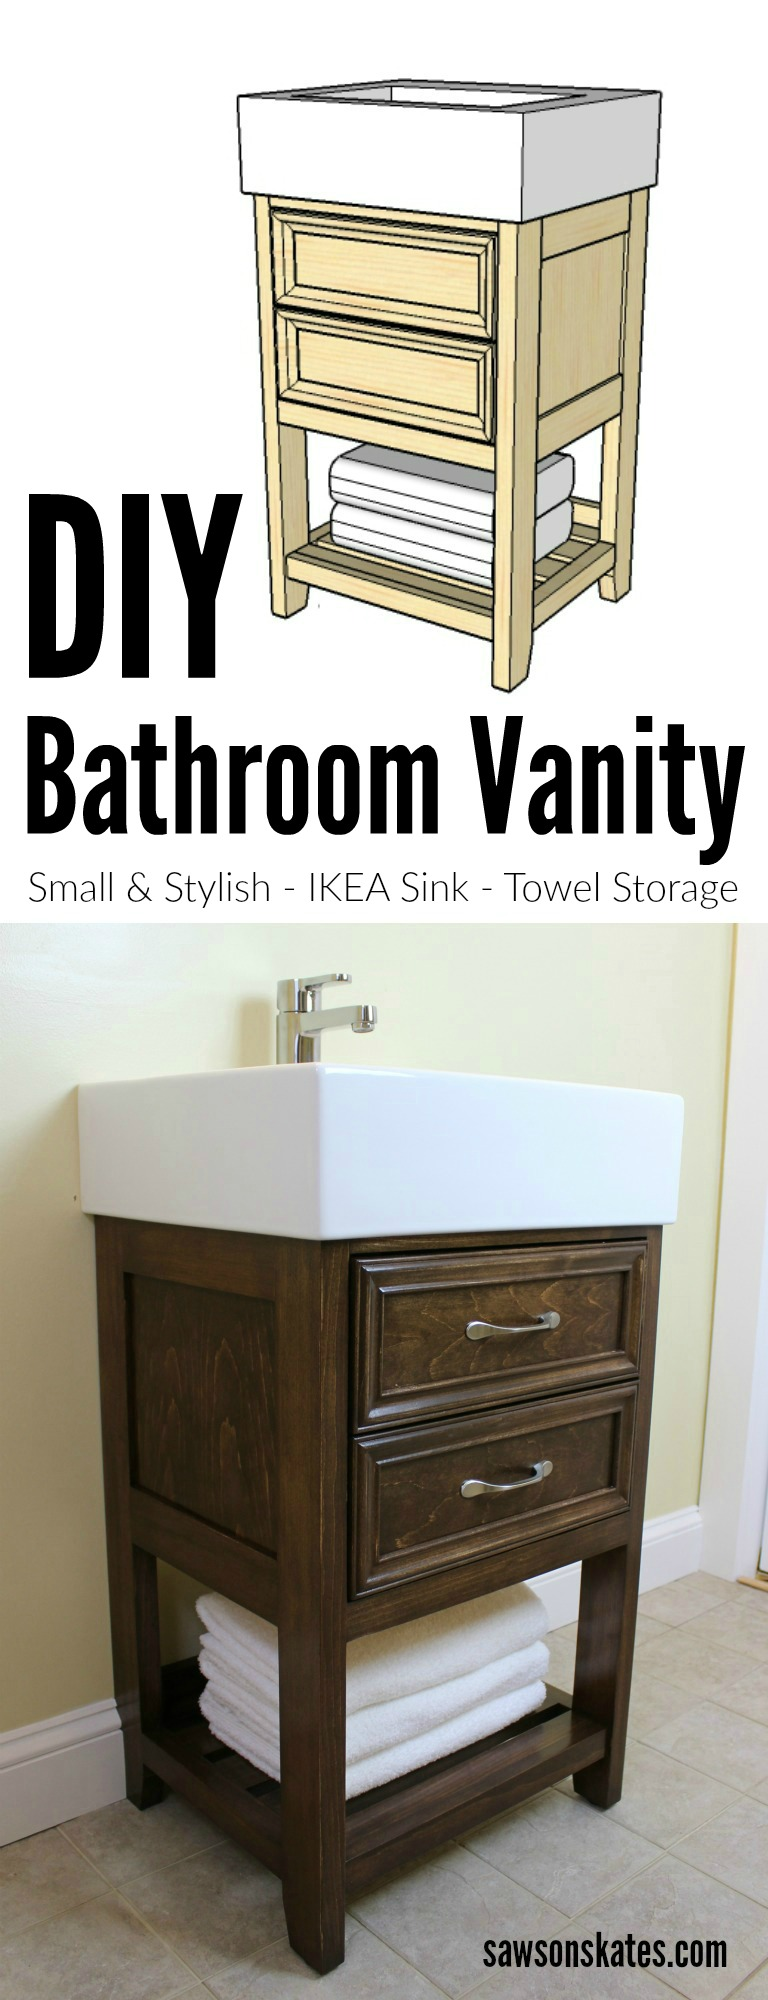 looking for small diy bathroom vanity ideas check out the plans for this diy vanity - Bathroom Cabinets Small Spaces